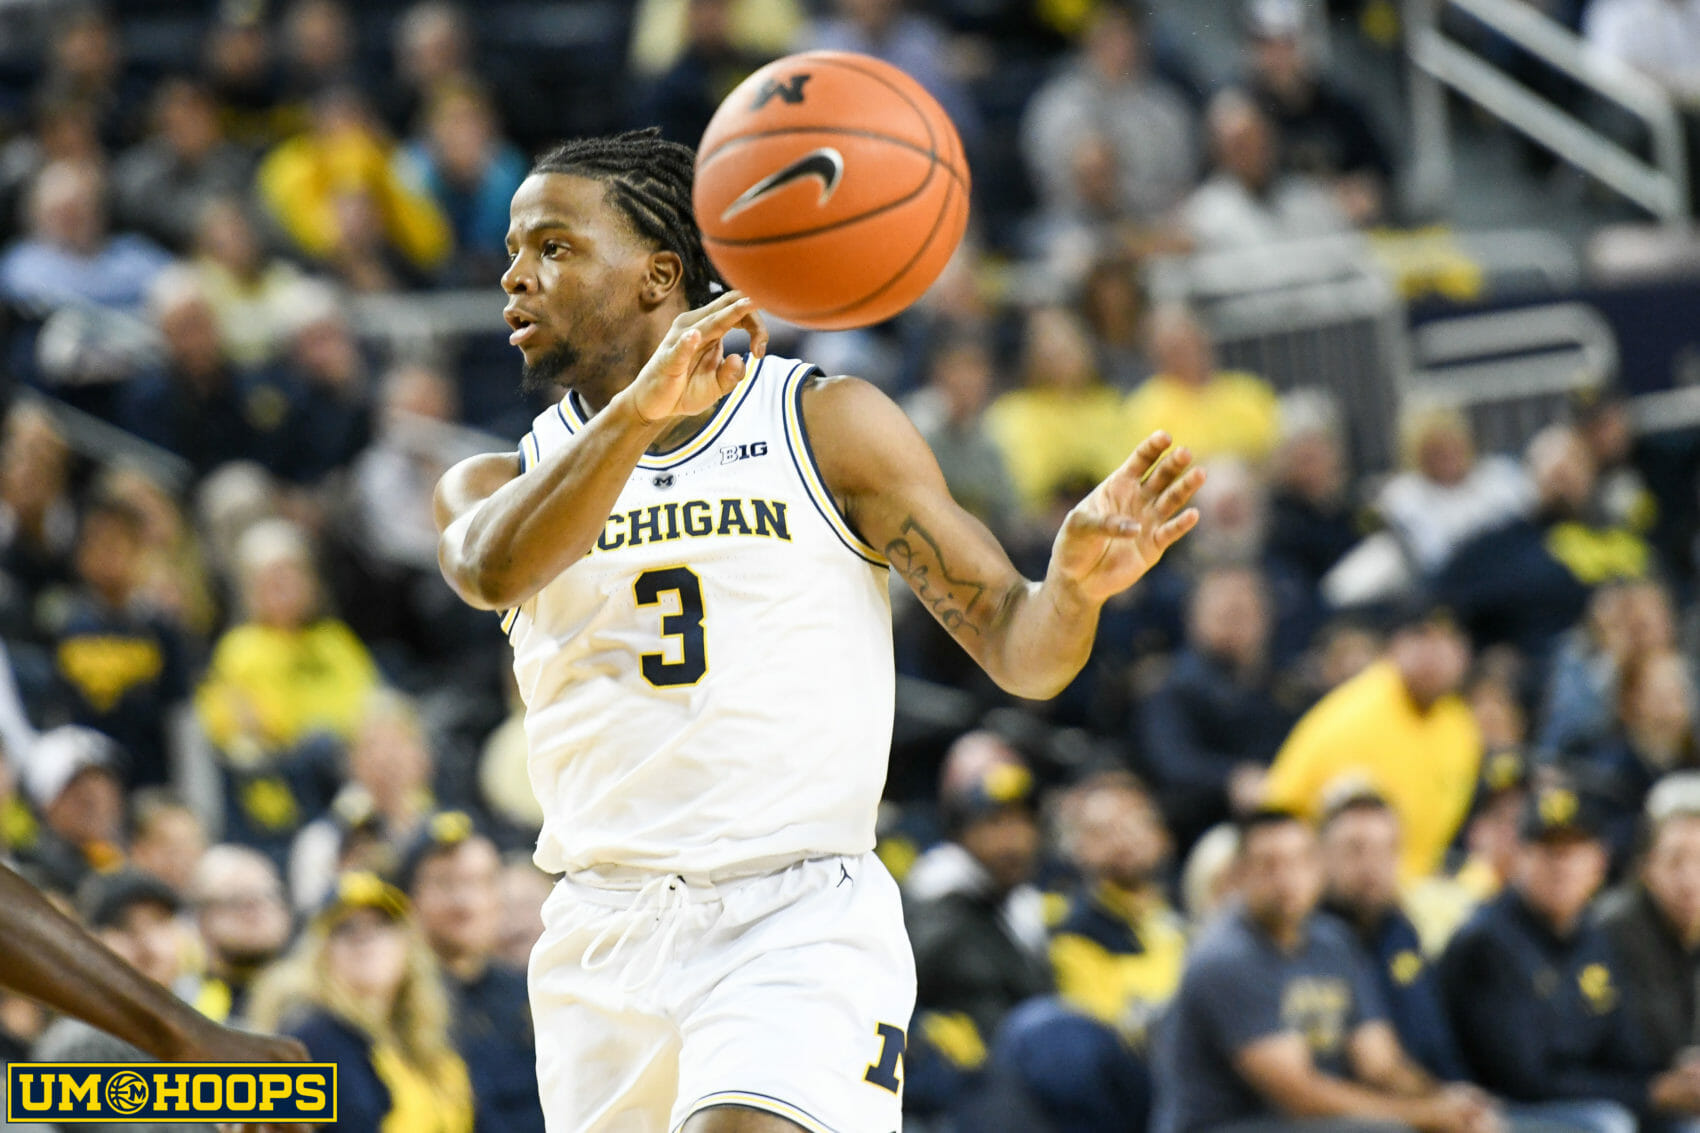 Michigan 63, Norfolk State 44-18